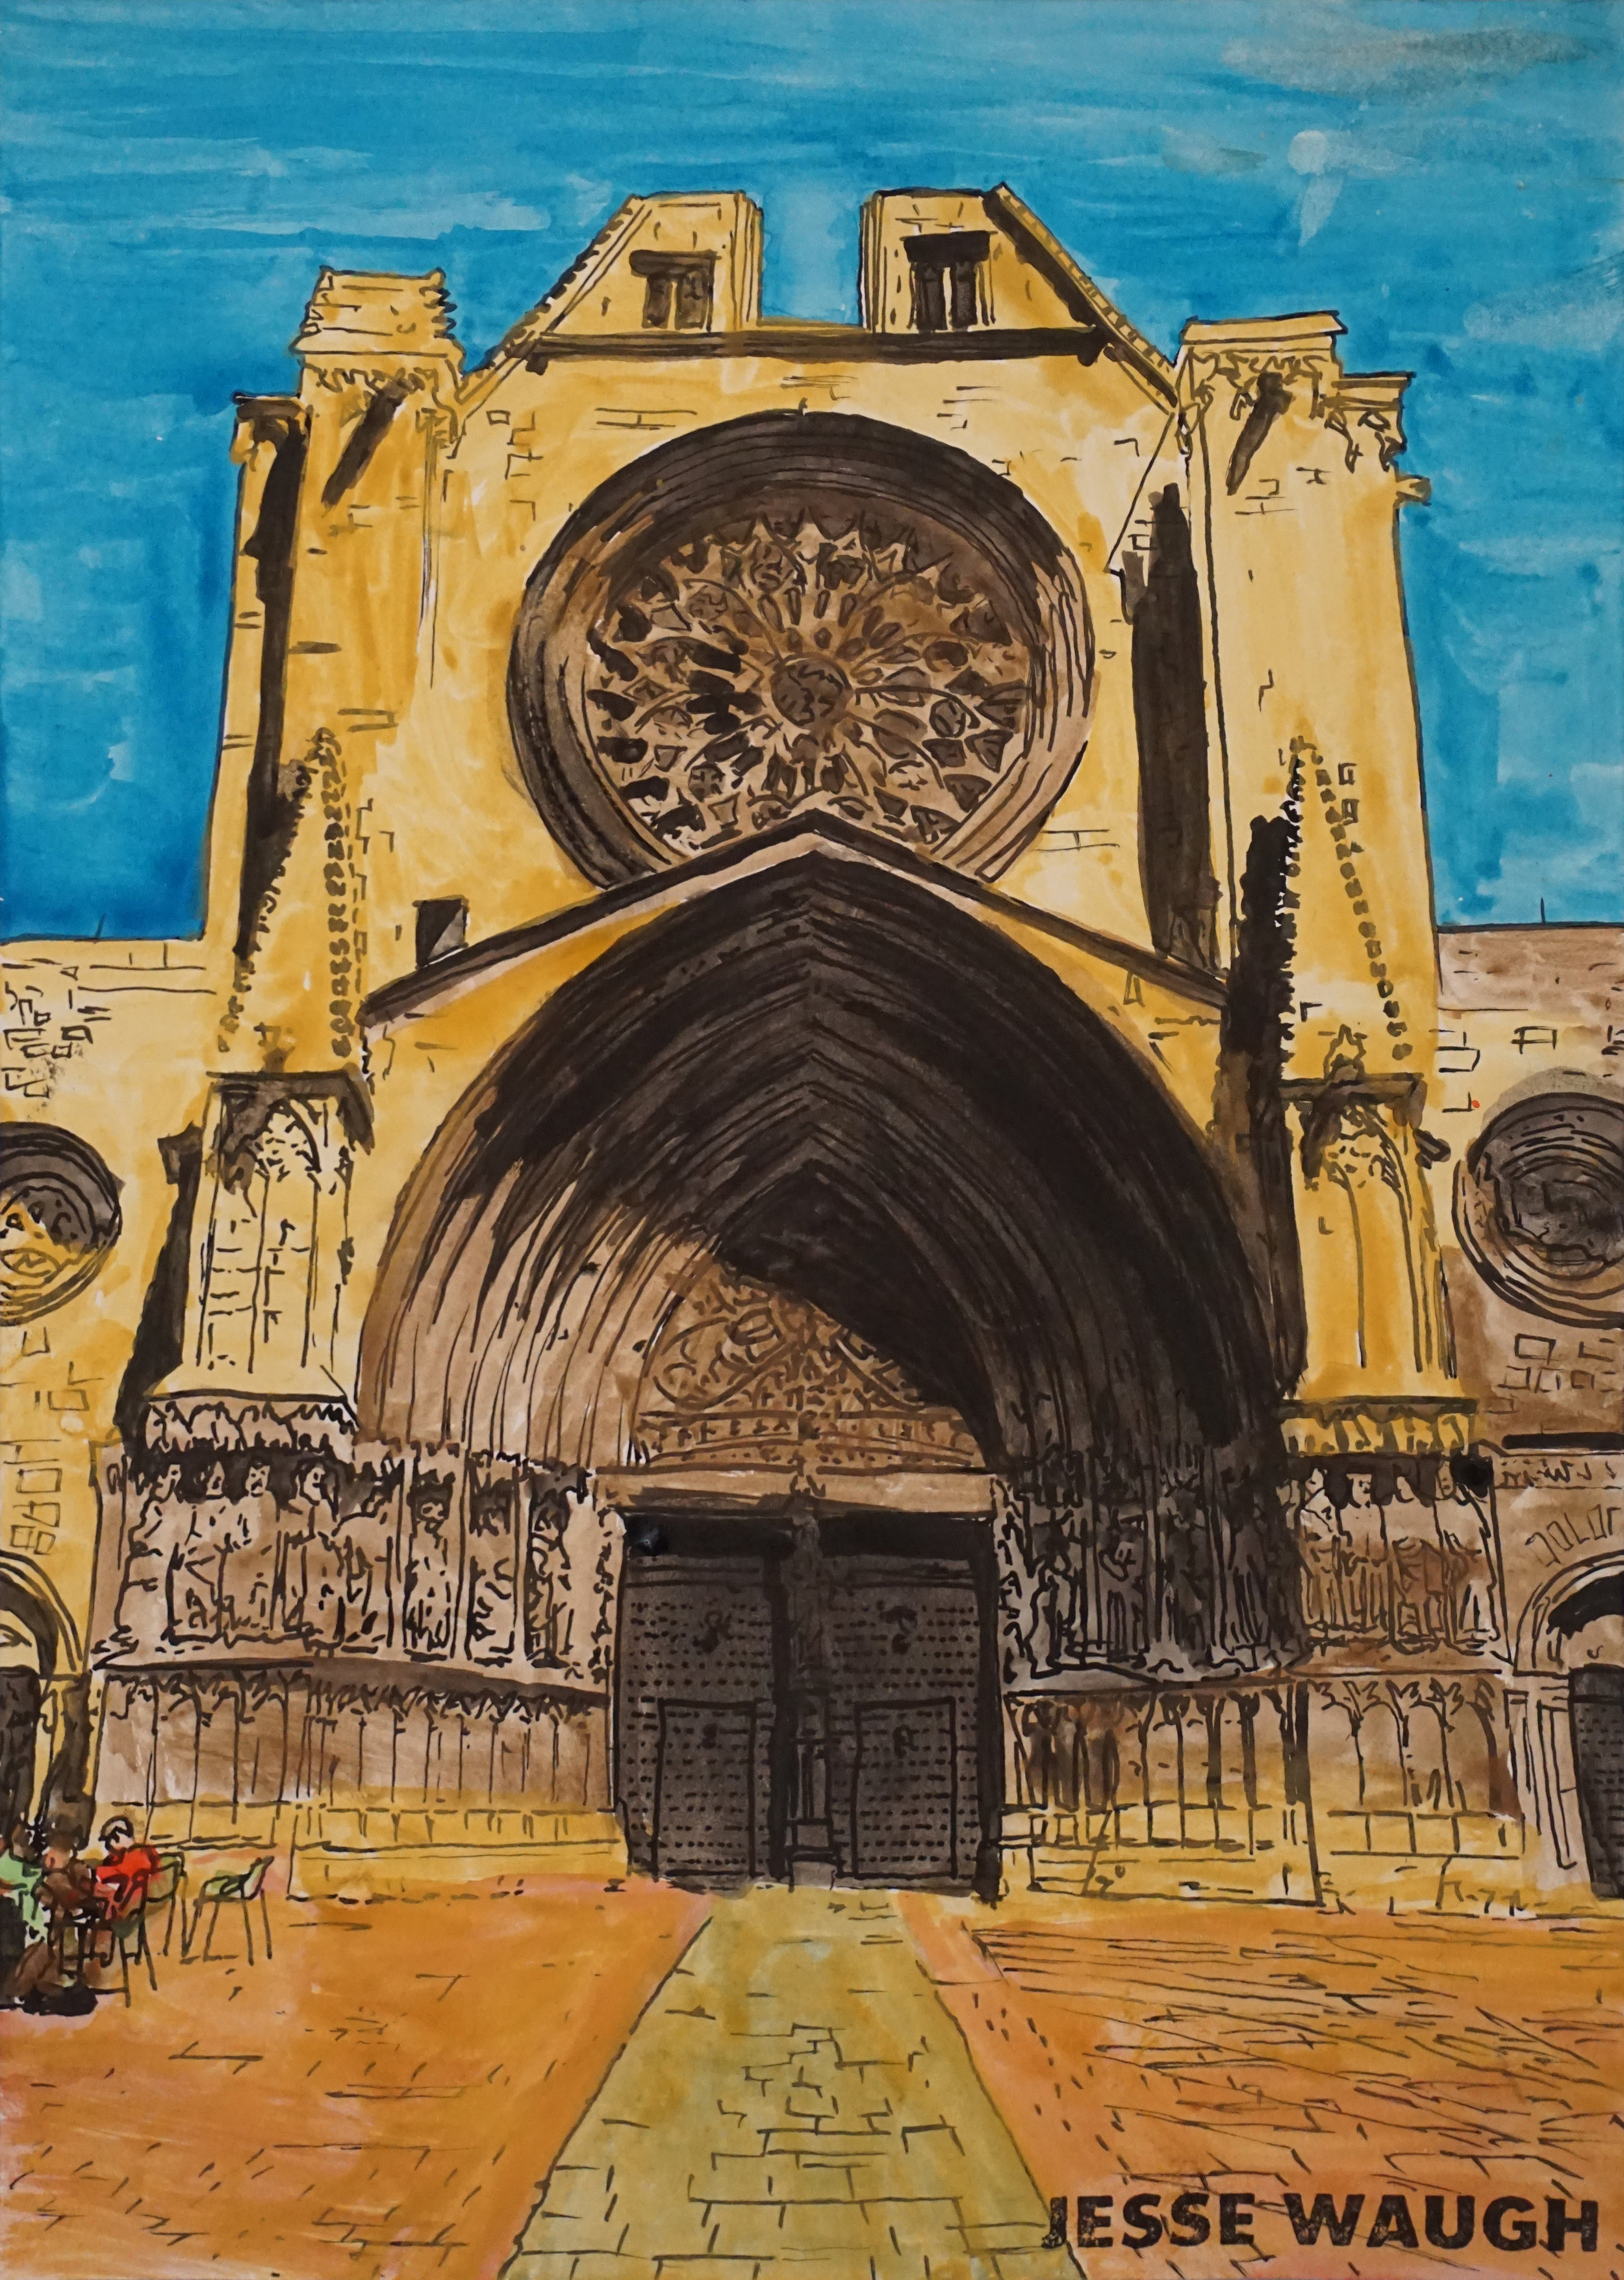 JESSE WAUGH   TARRAGONA CATHEDRAL   2018 WATERCOLOR ON PAPER 297 X 420 (A3)